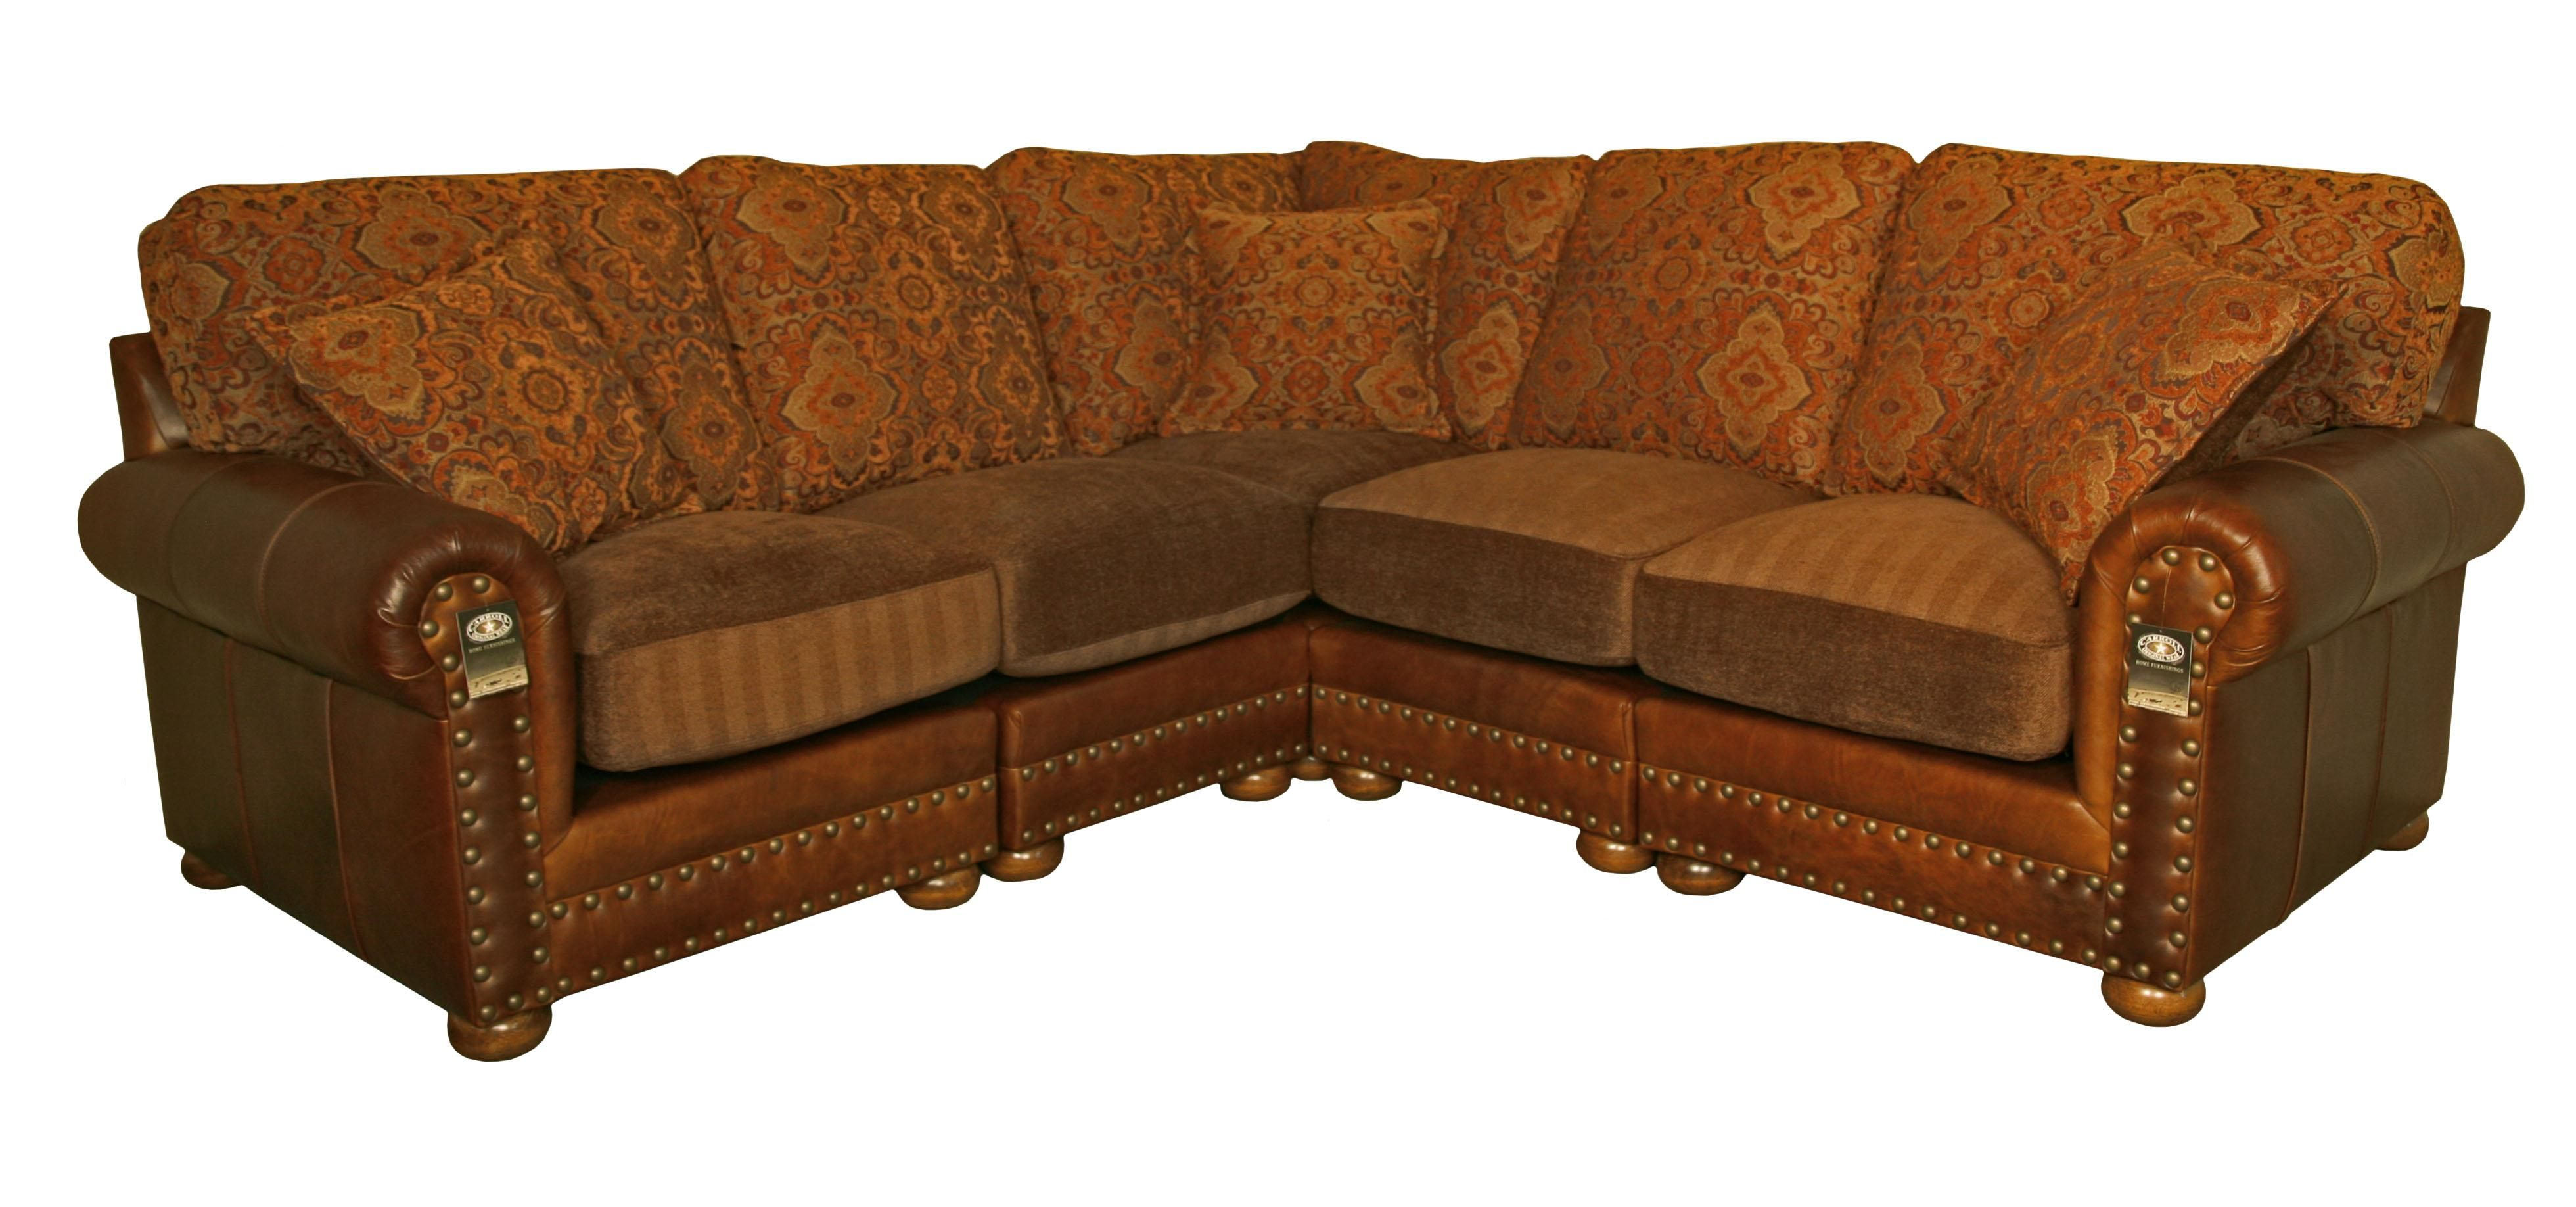 leather and cloth couches | Hinsdale Sectional Sofa Weston ...